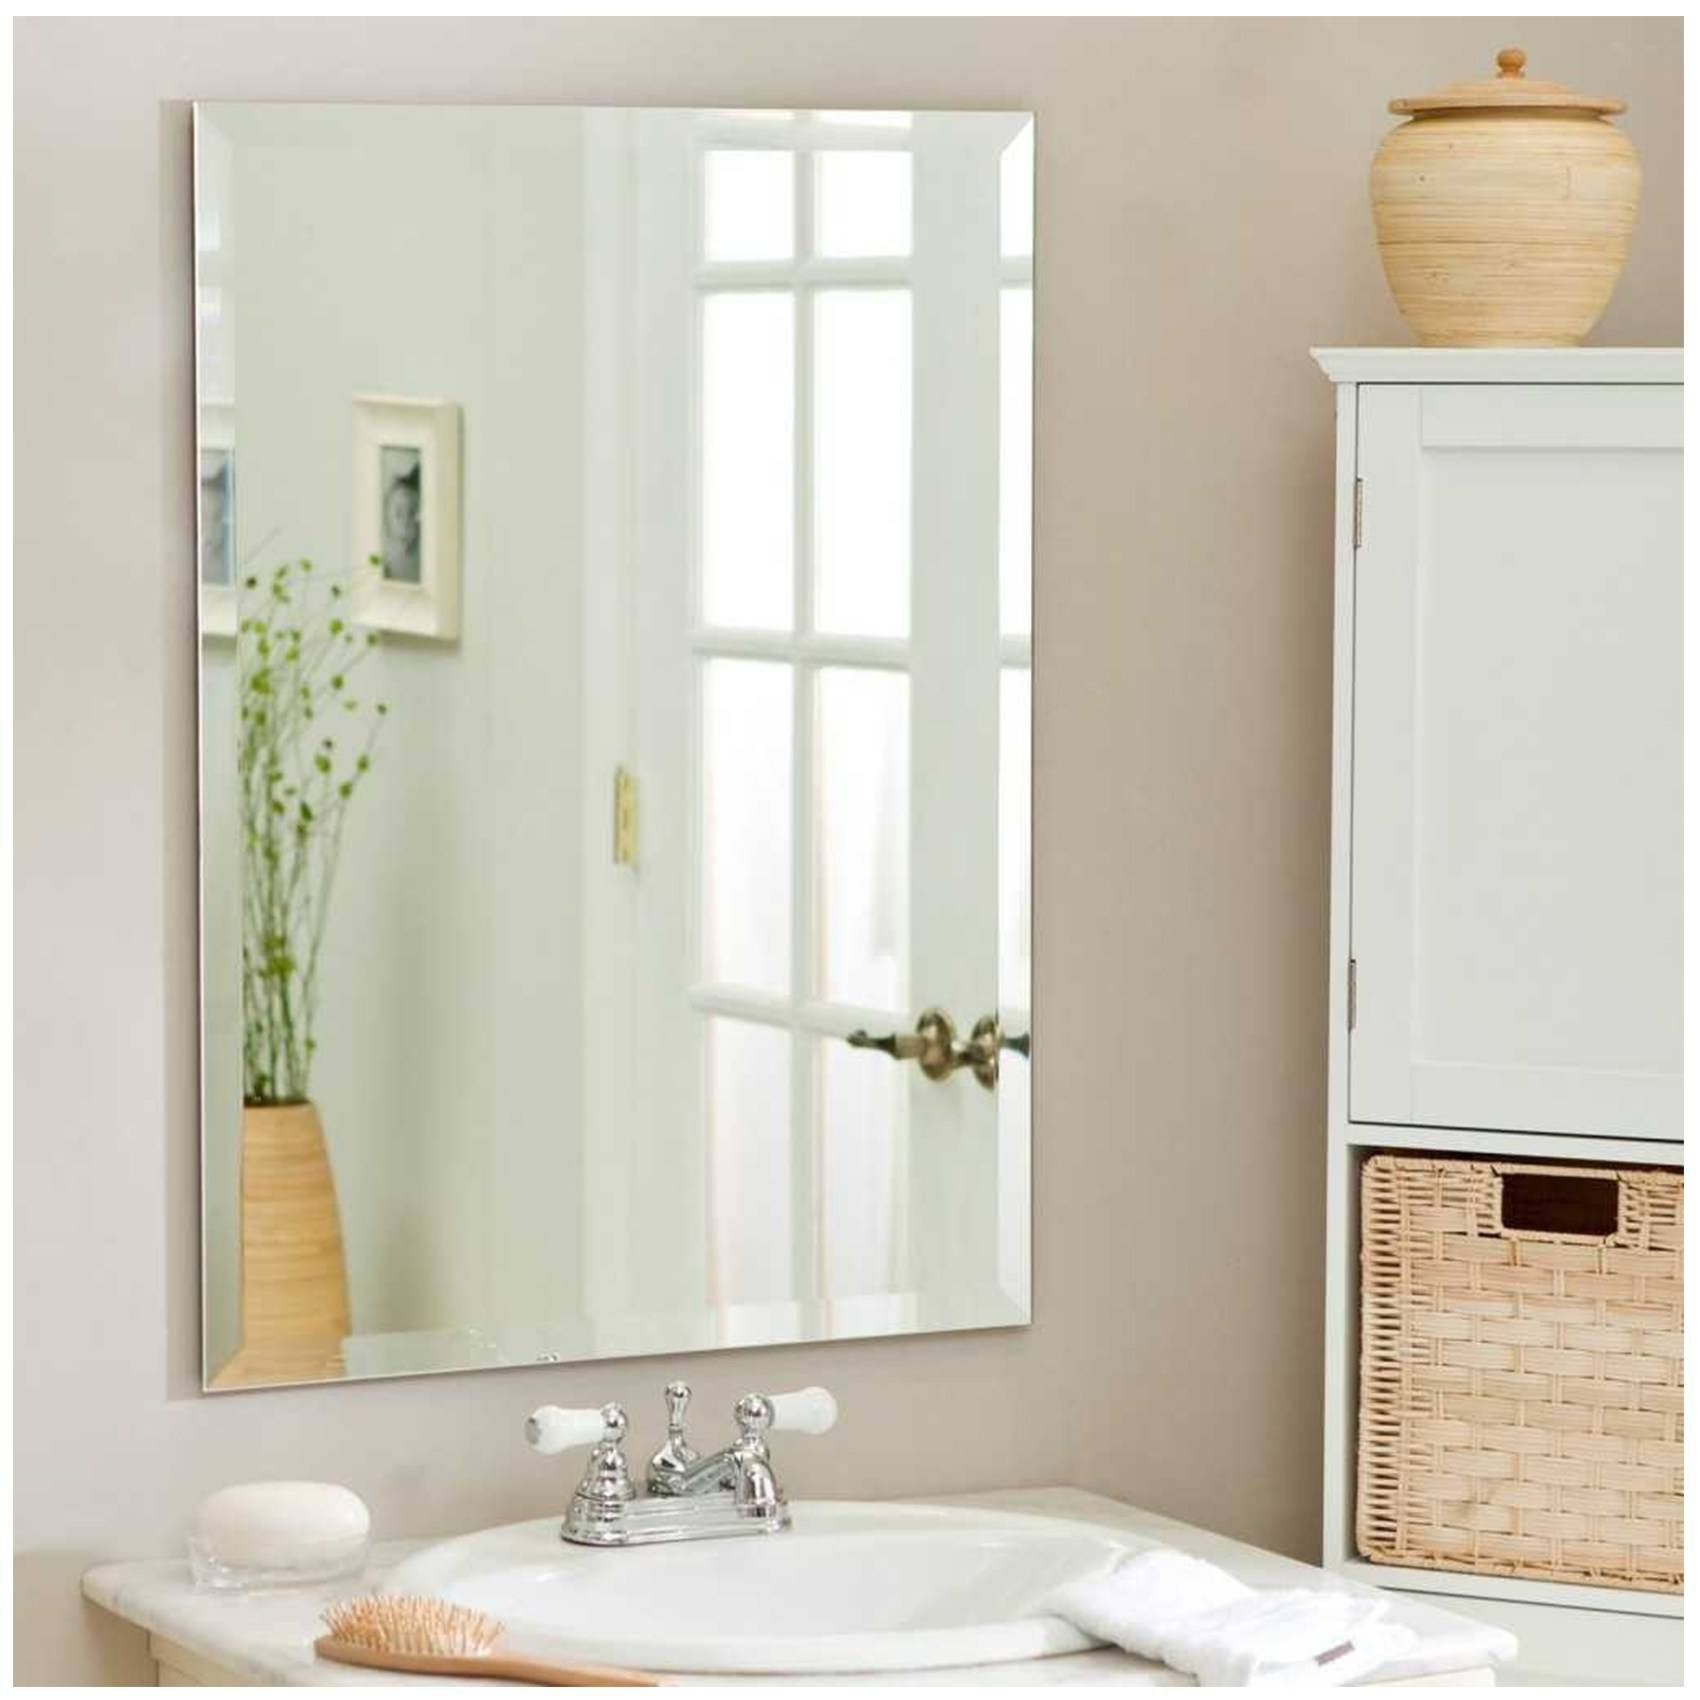 Bathroom Cabinets : Large Decorative Bathroom Wall Mirrors pertaining to Wall Mirrors Without Frame (Image 3 of 15)